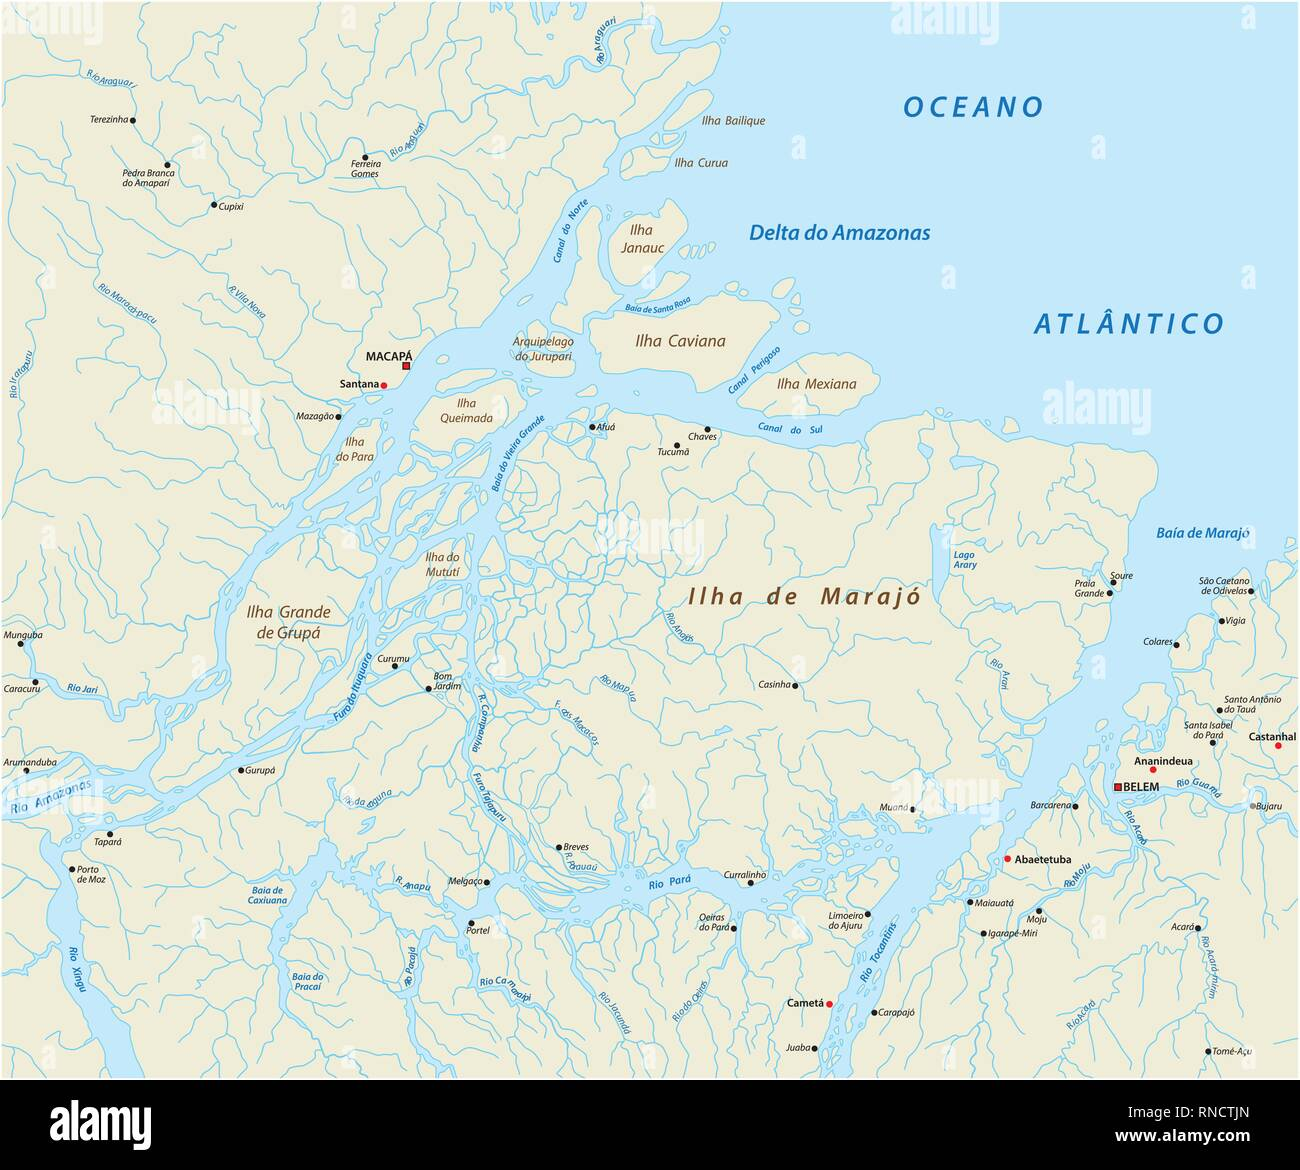 Detailed vector map of the mouth of the Amazon River in the Atlantic Ocean, Brazil - Stock Image